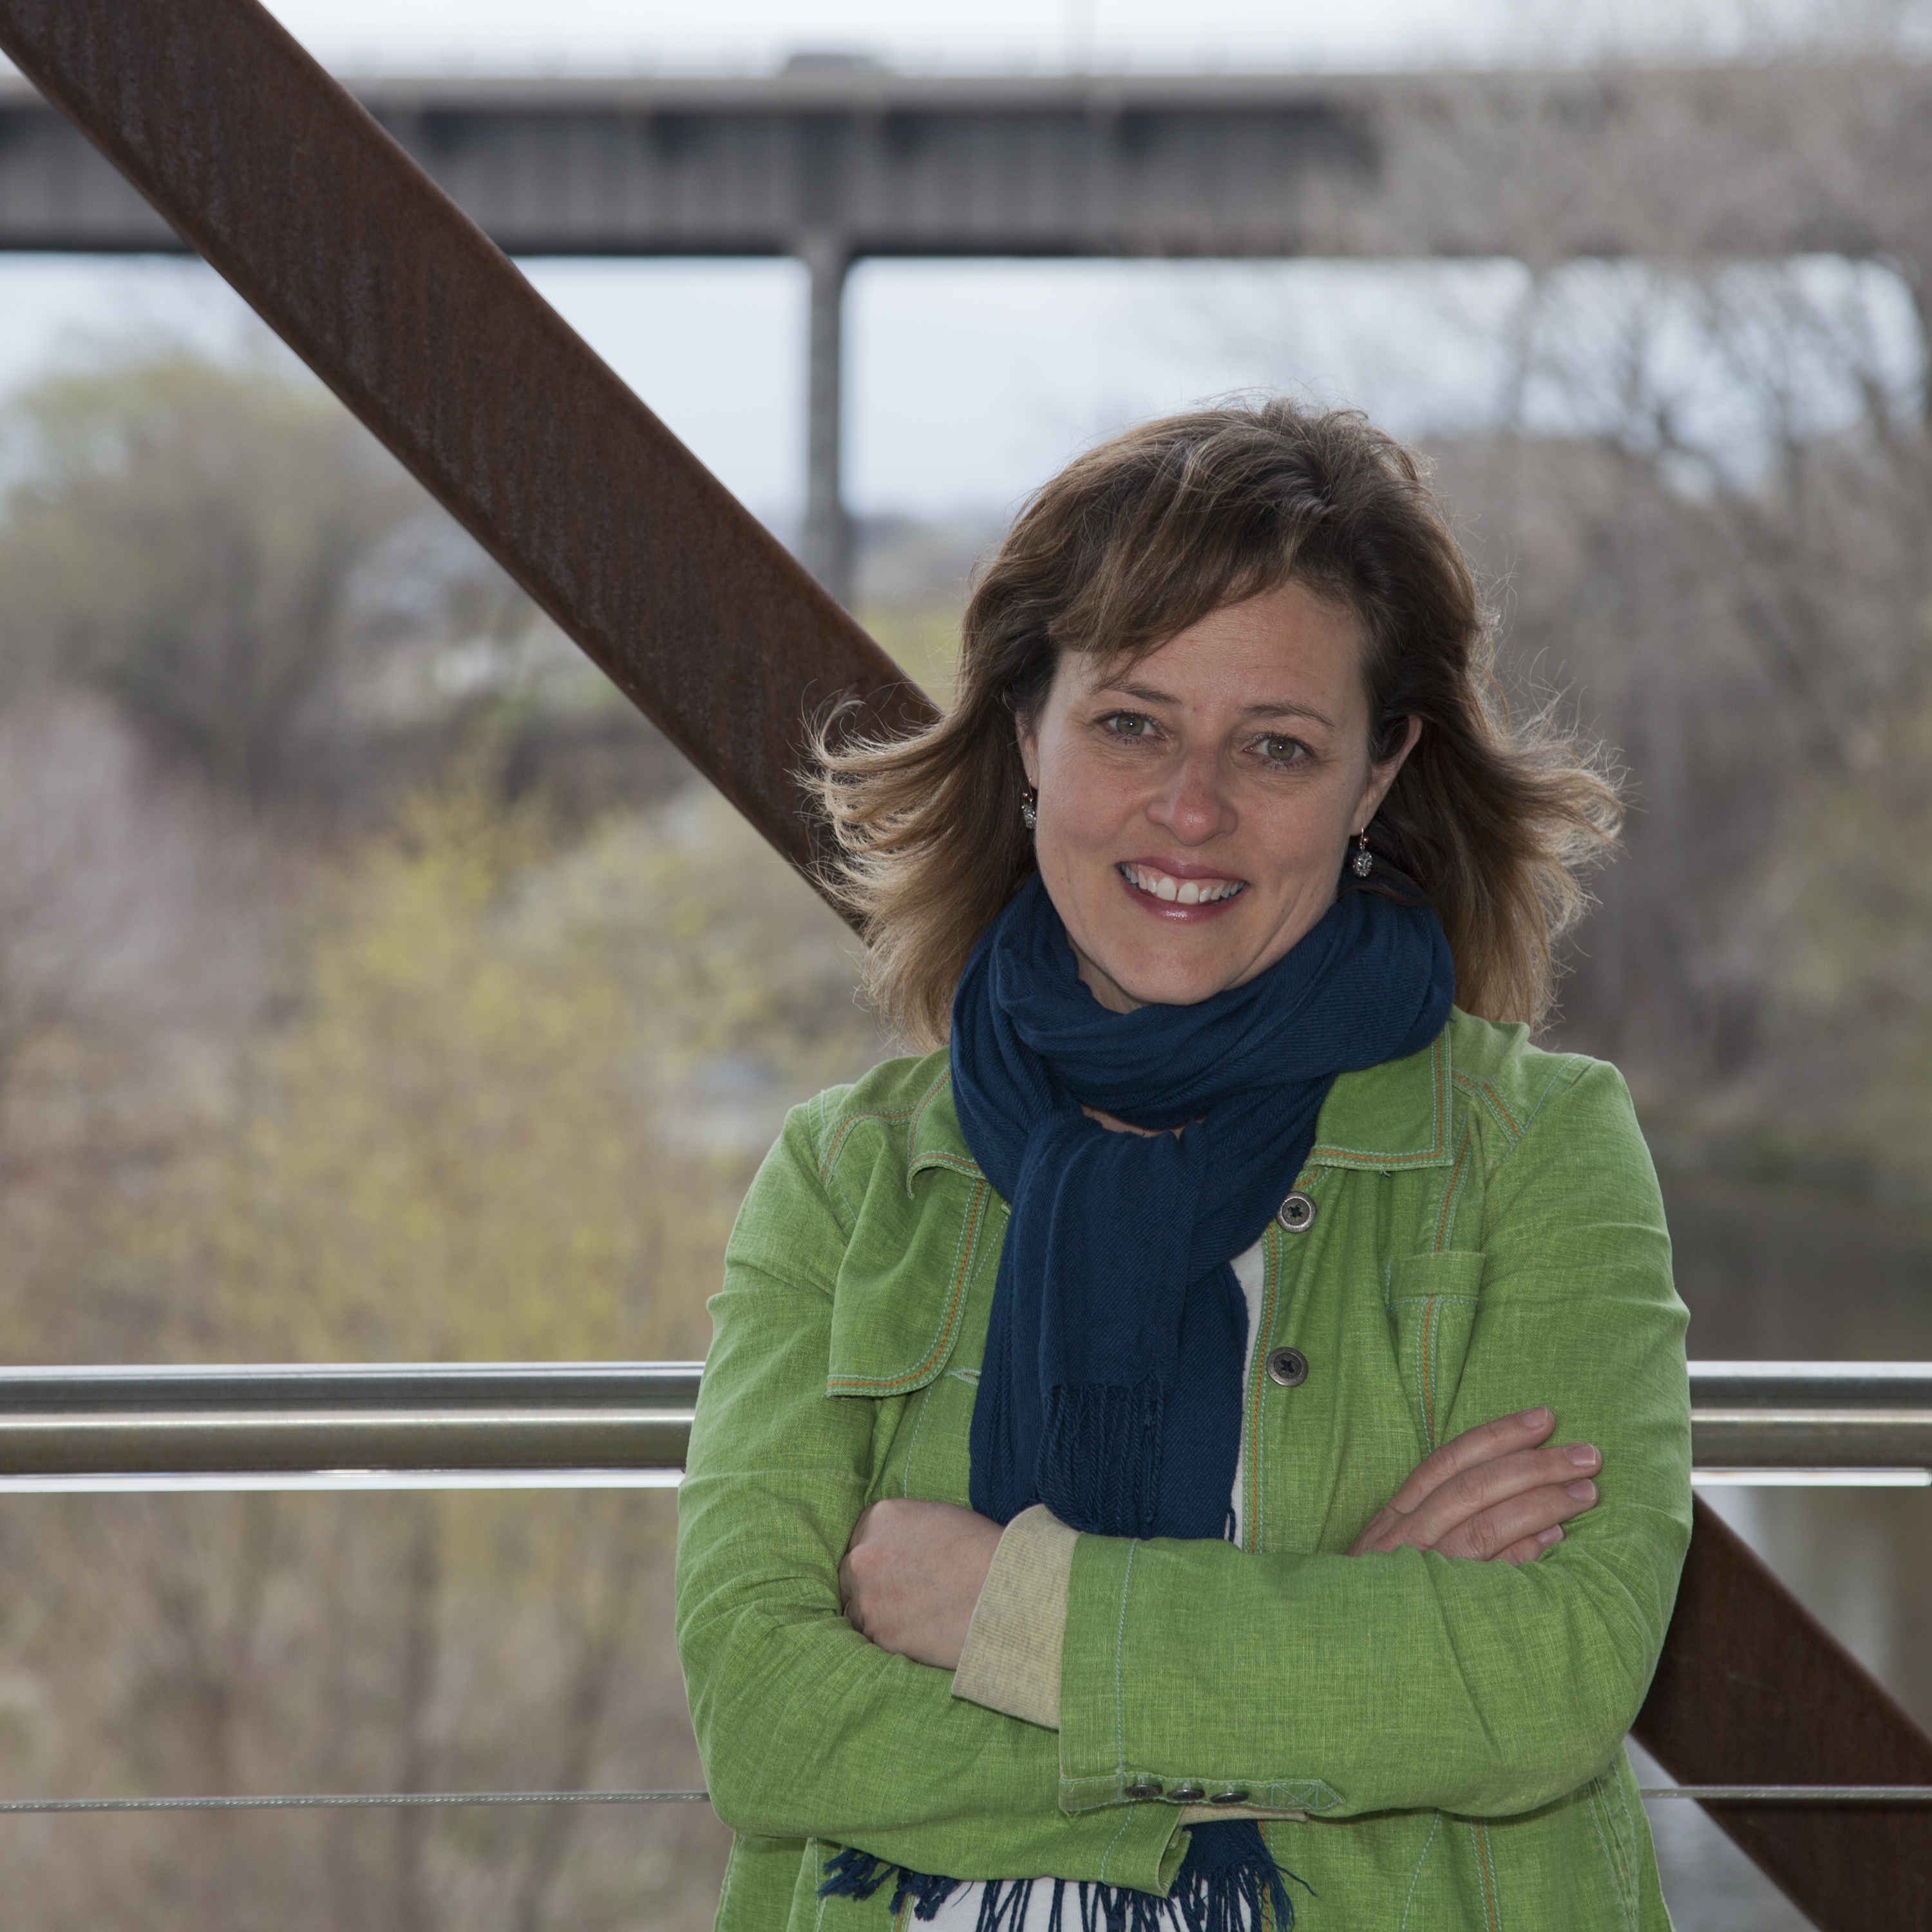 LISC Selects Laura Bray as New Executive Director